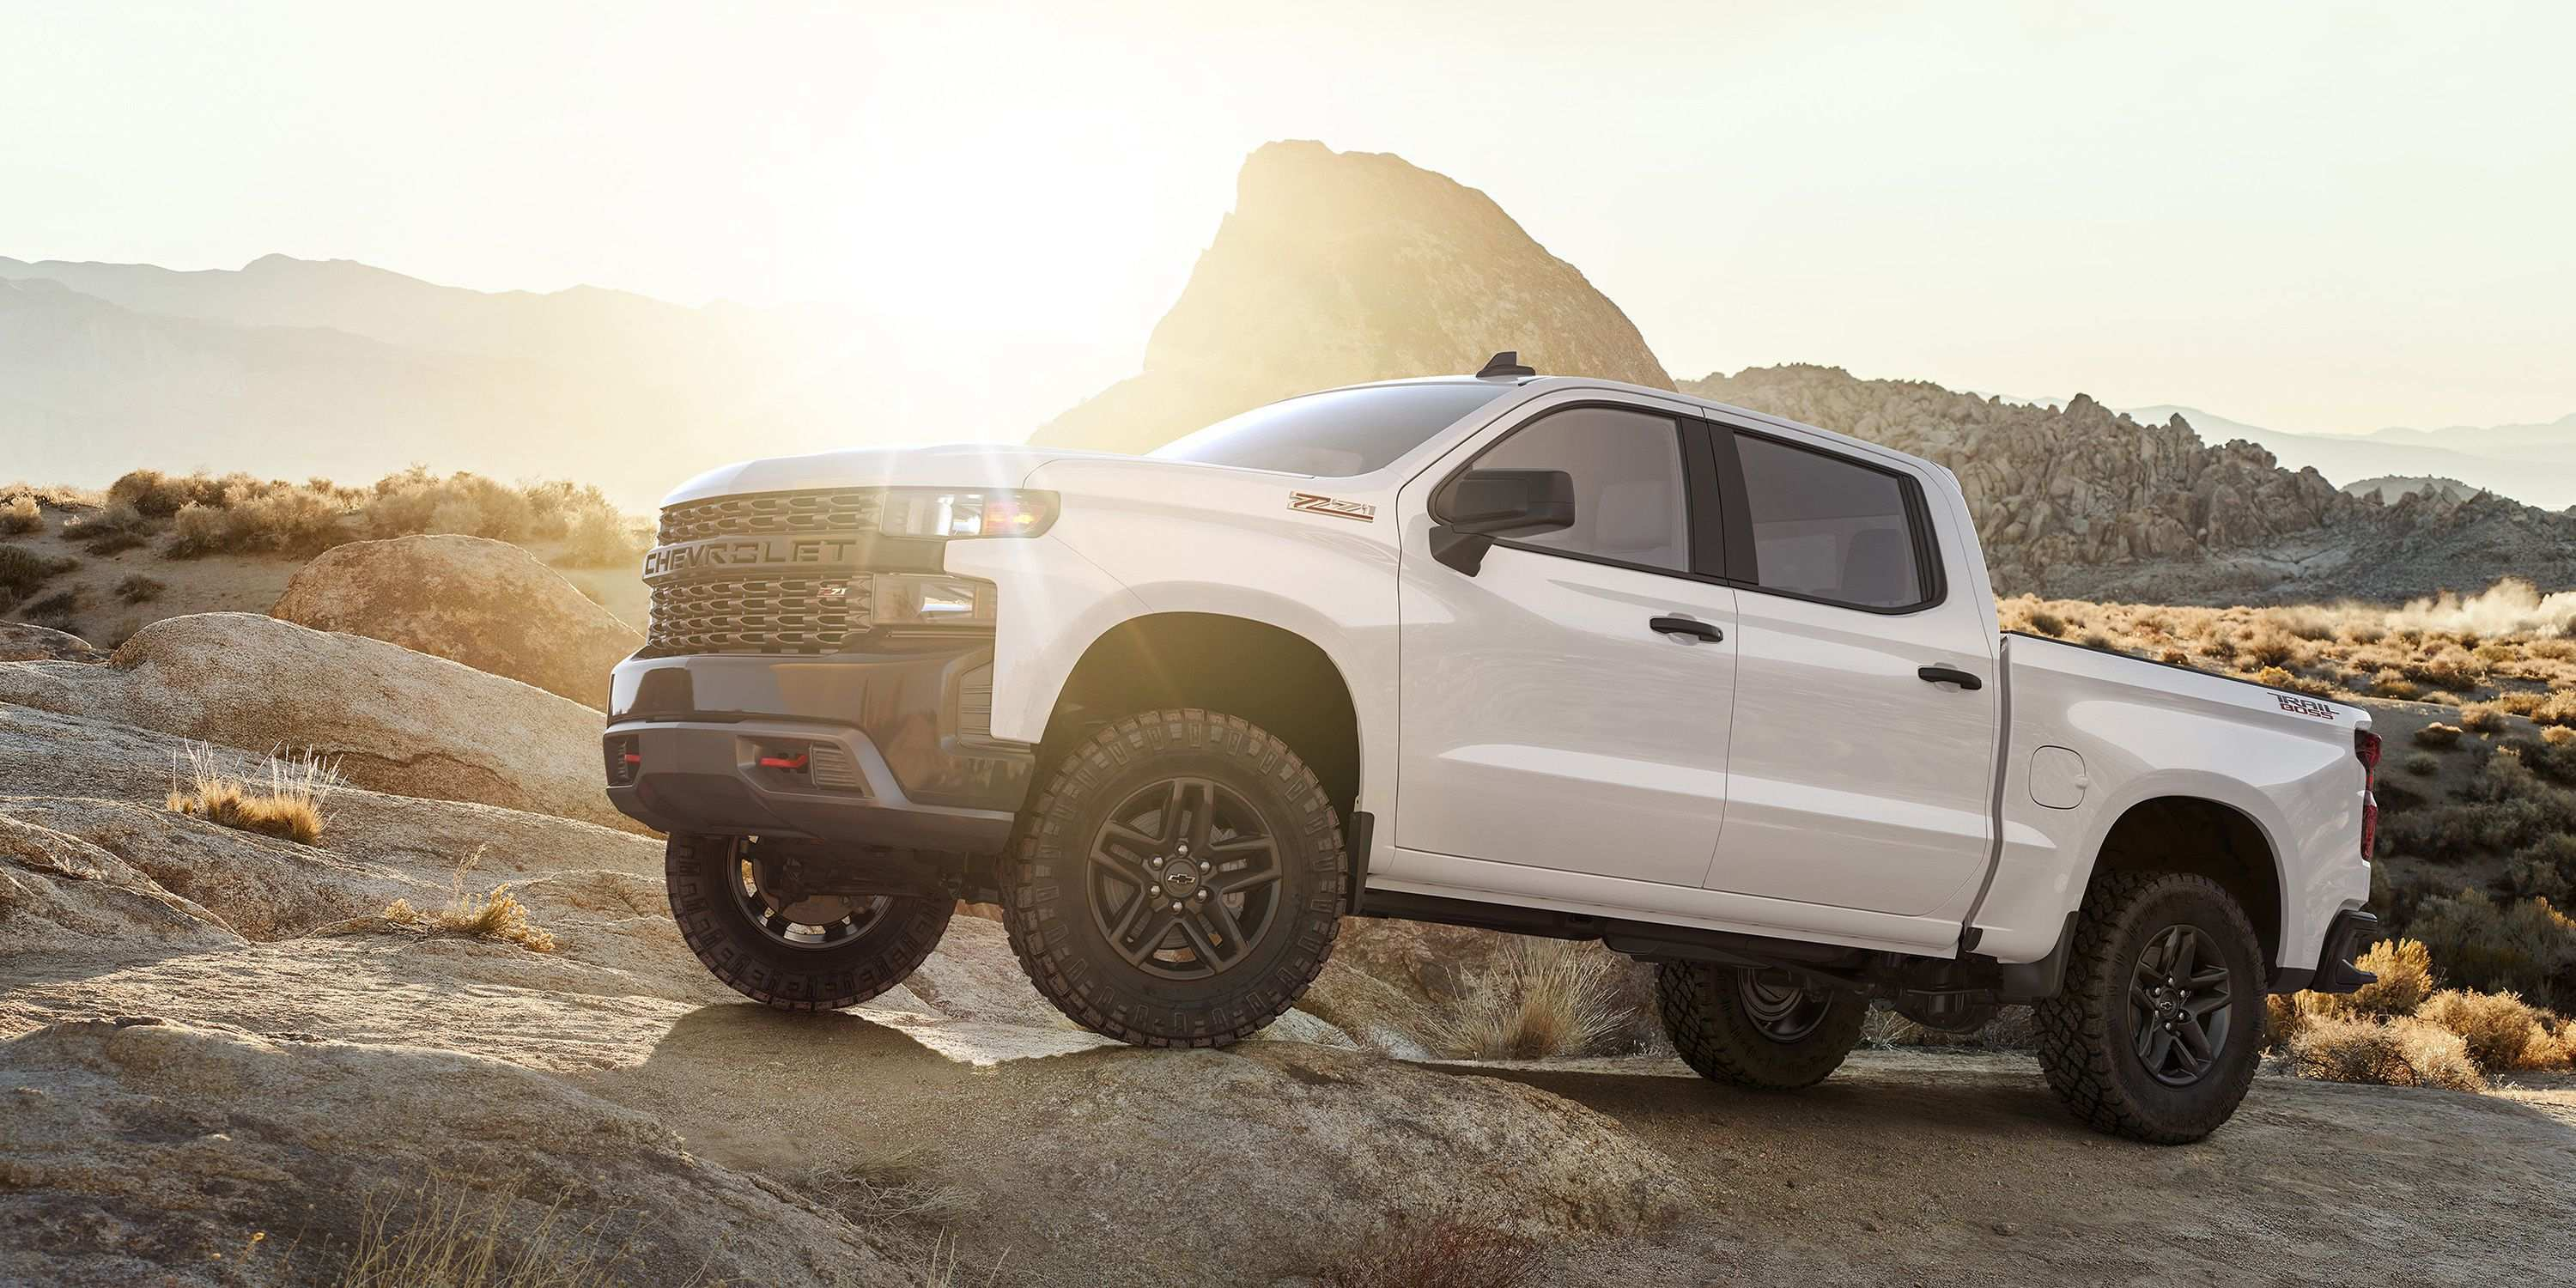 46 Great 2019 Chevrolet Diesel Ratings for 2019 Chevrolet Diesel